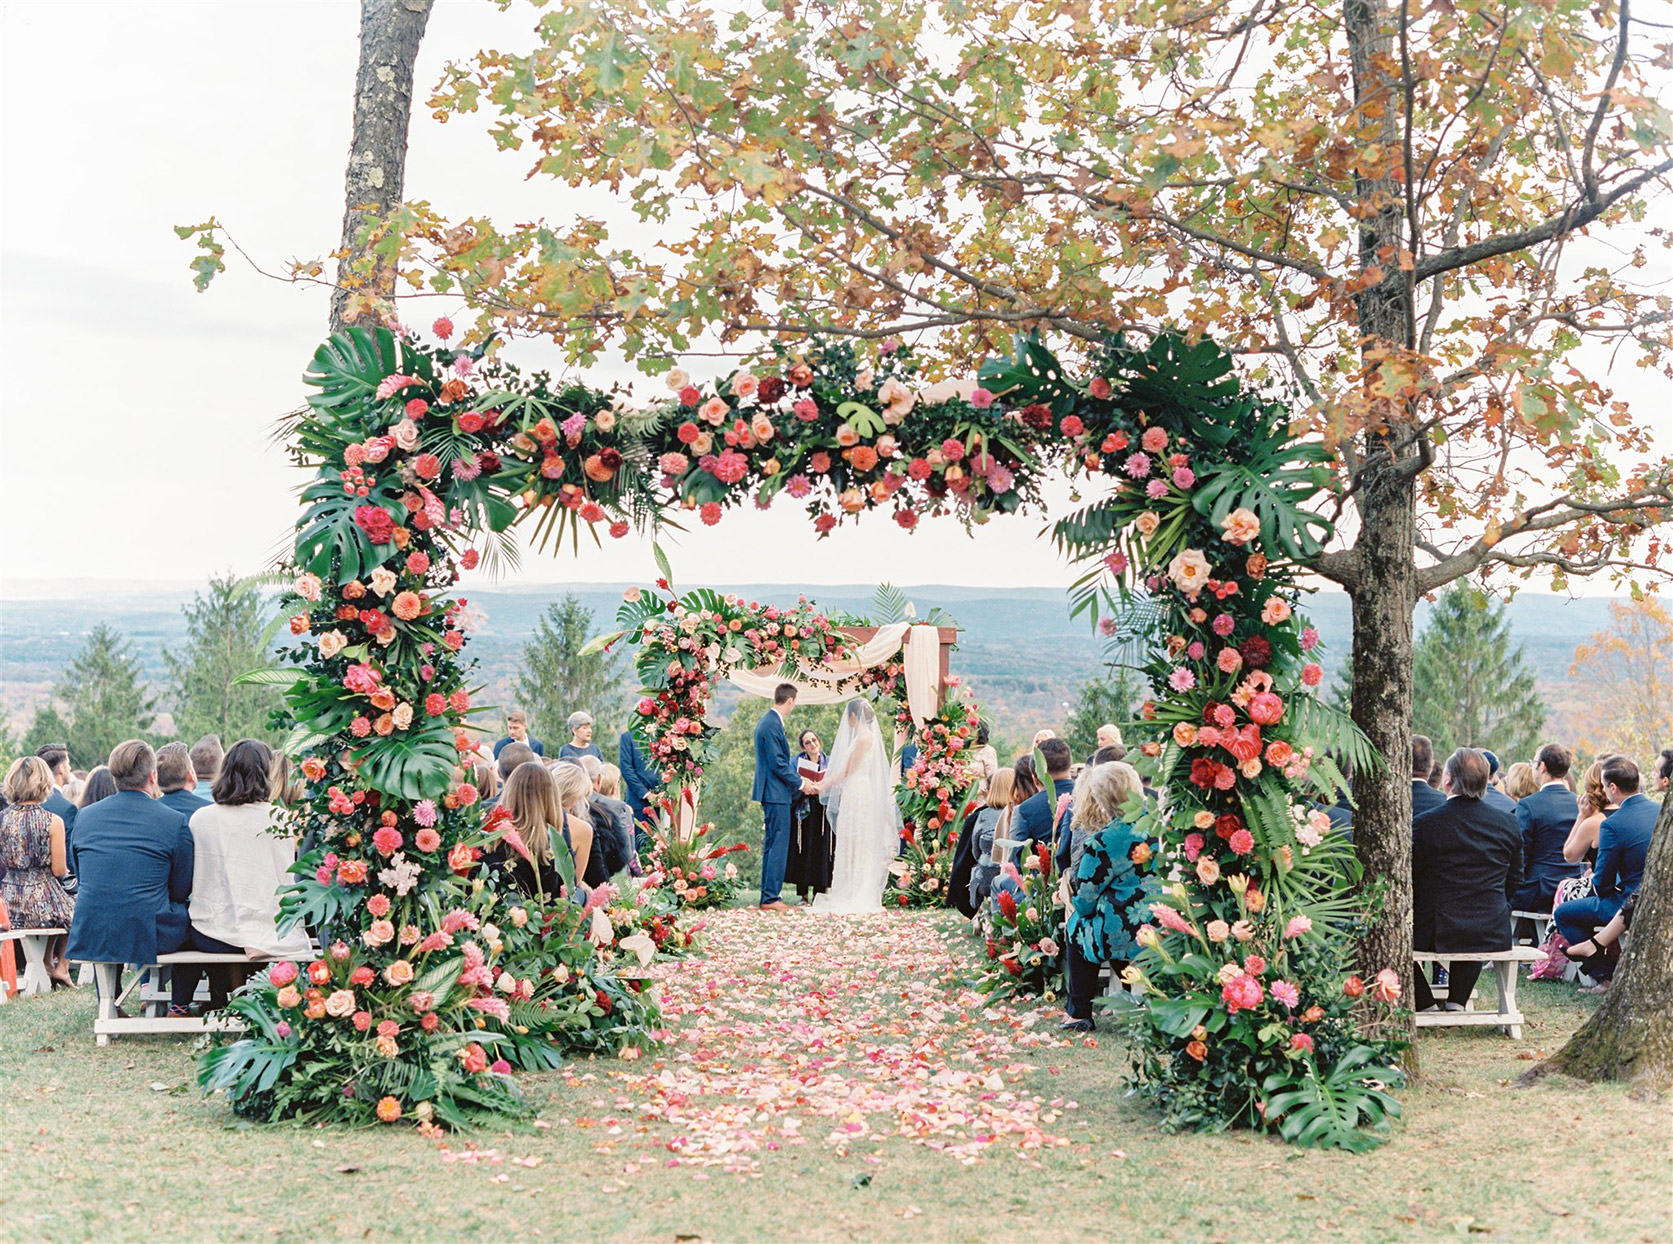 couple holding hands during outdoor wedding ceremony with guests seated on benches